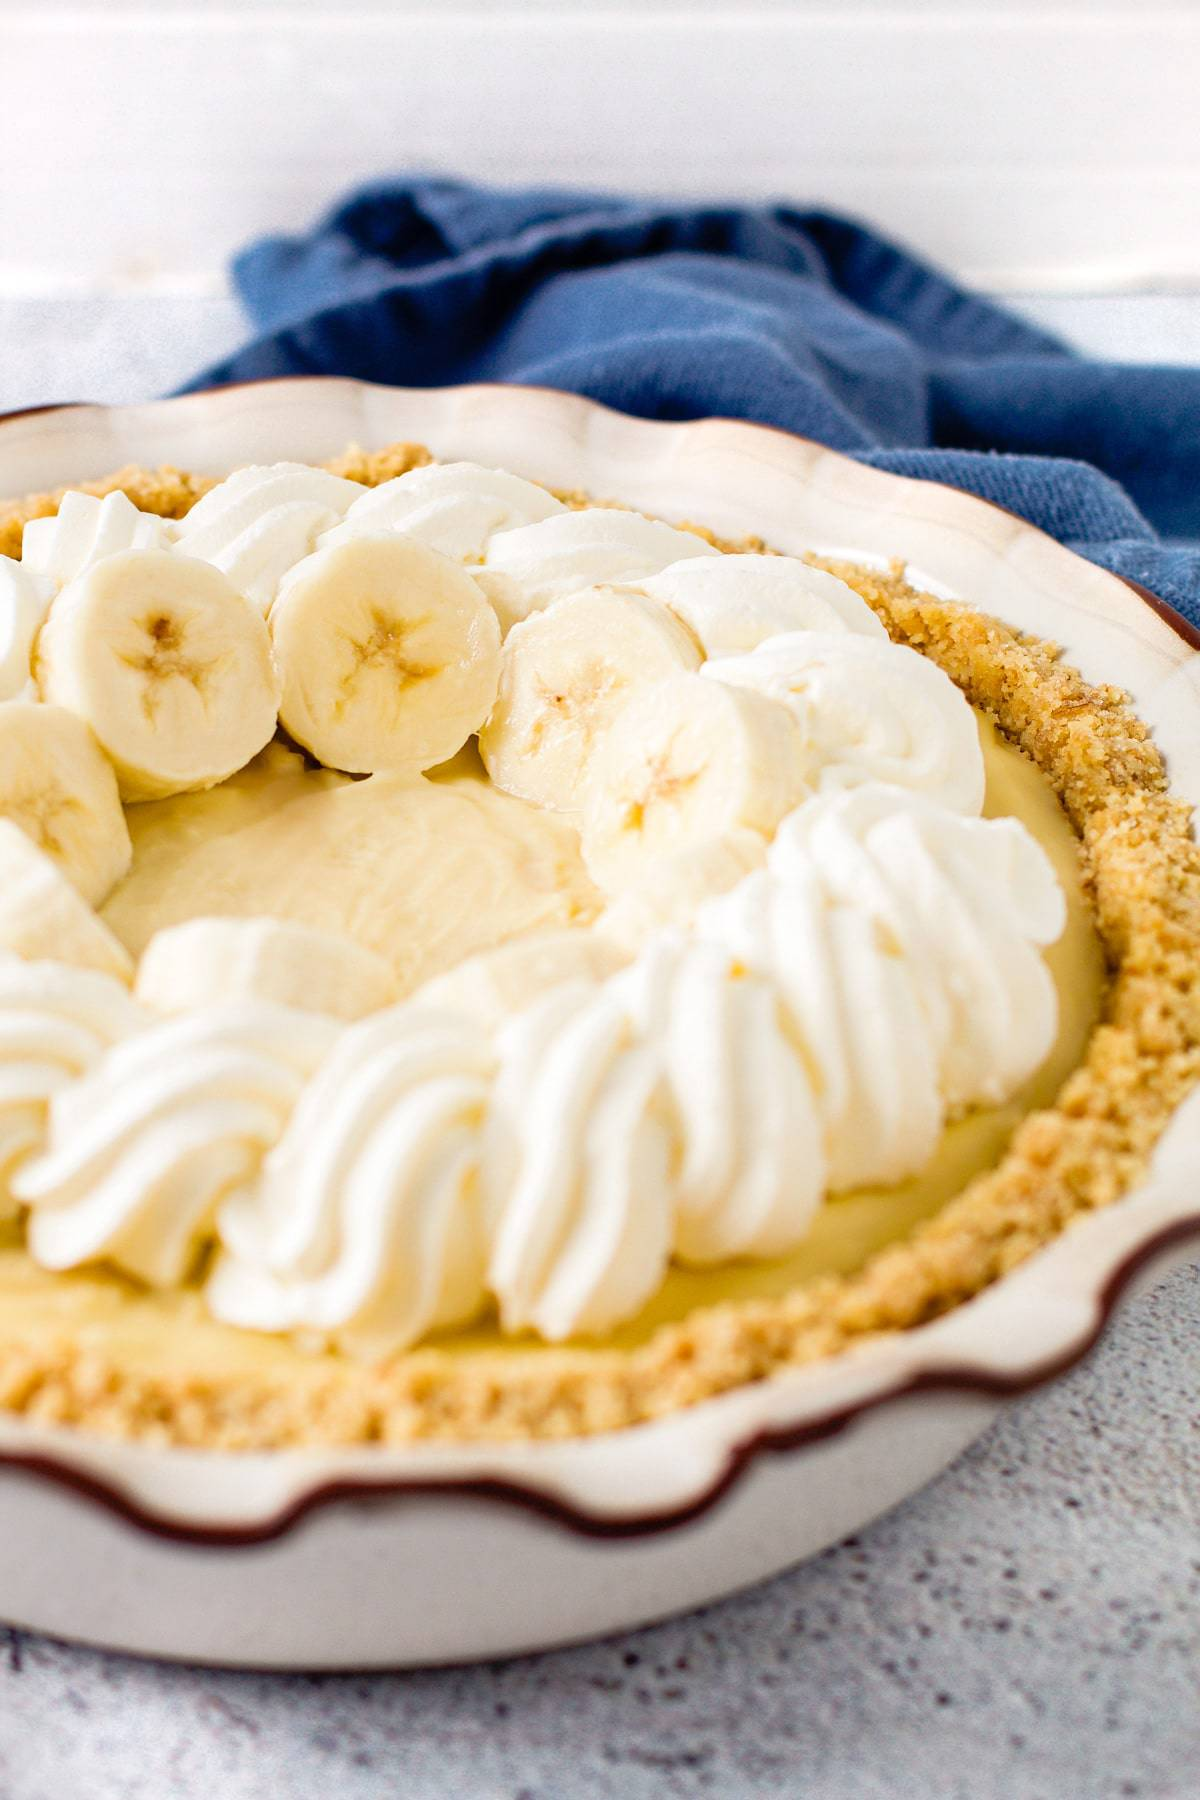 Fresh bananas lined up around the edge of banana cream pie.